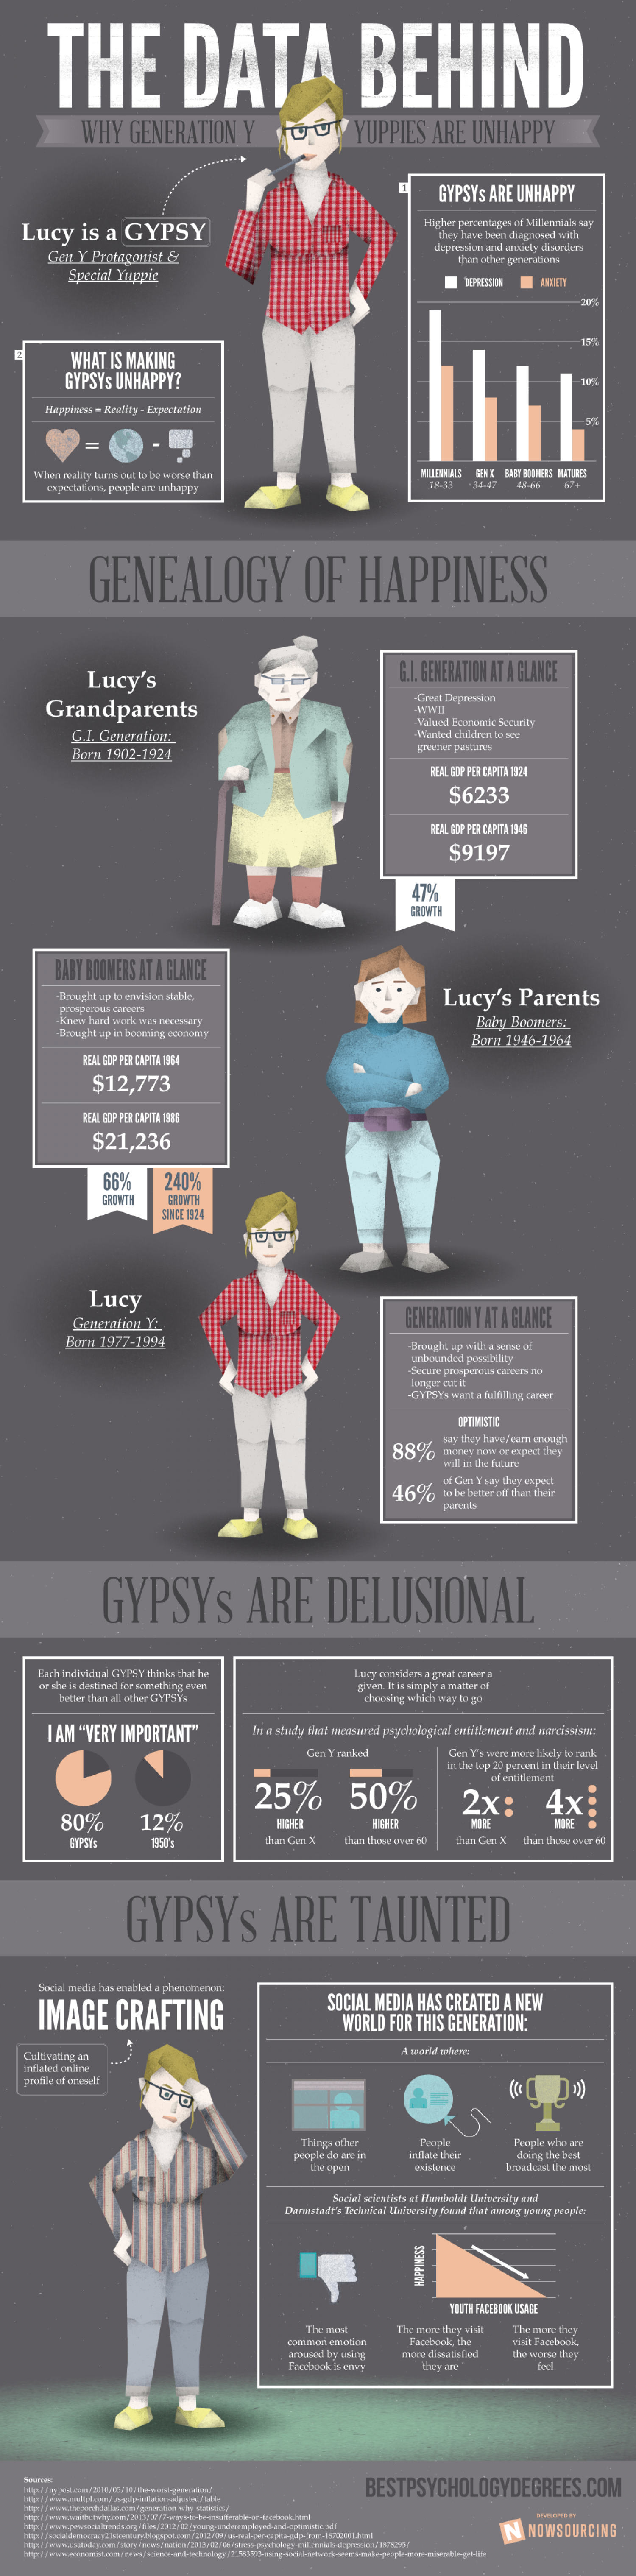 The Data Behind Why Generation Y Yuppies are Unhappy Infographic